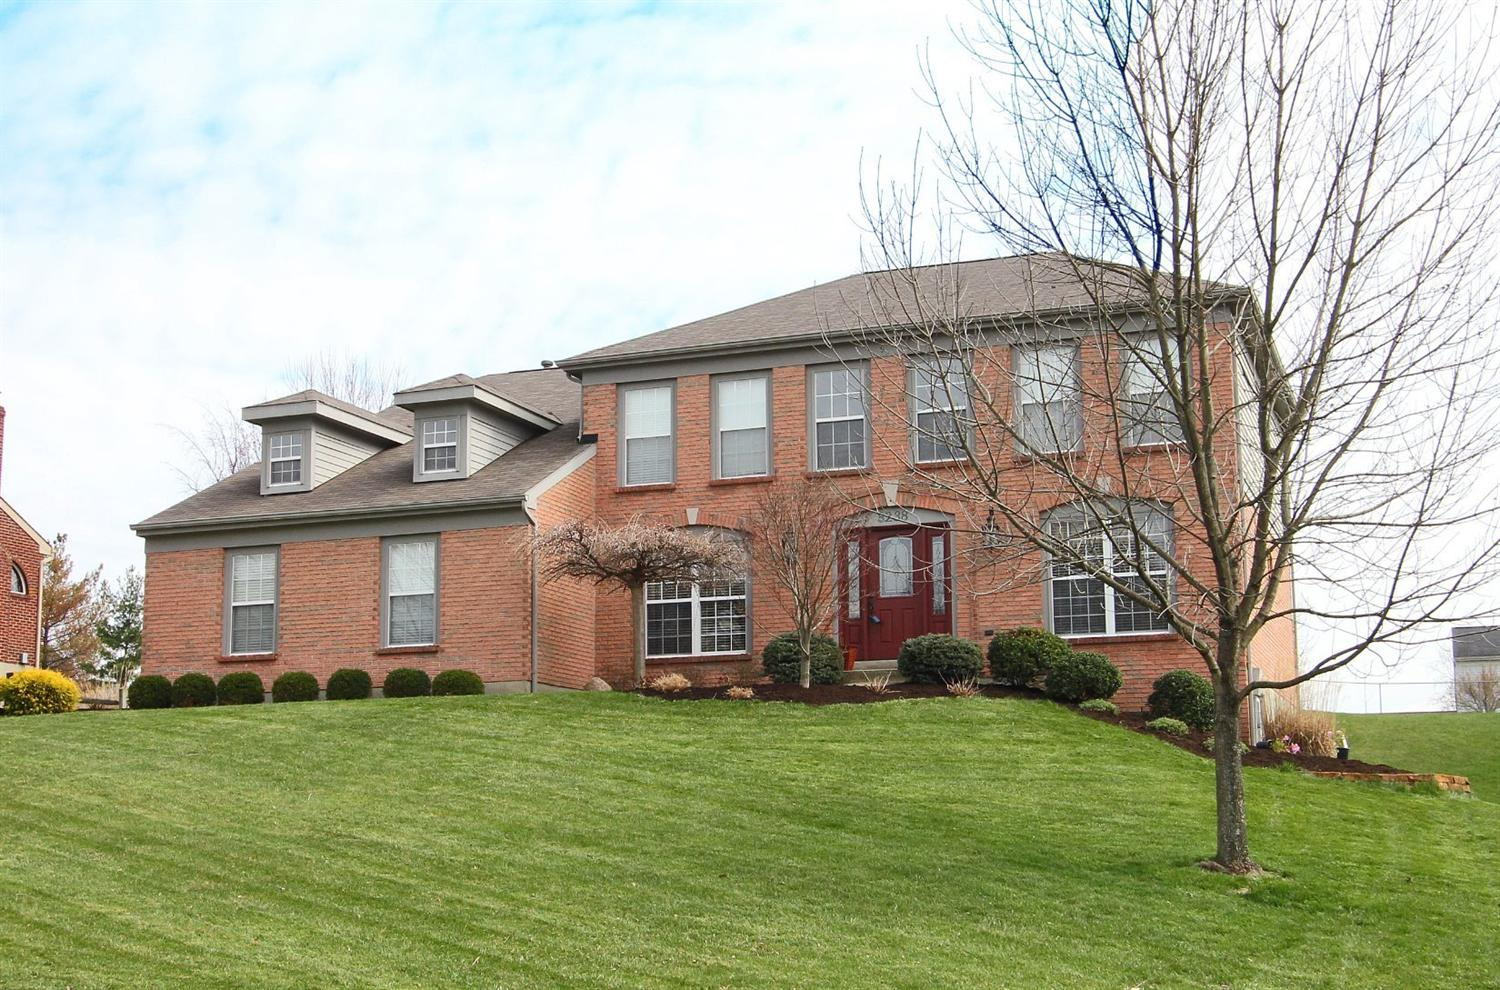 Photo 1 for 8238 Pine Knoll Ct Florence, KY 41042